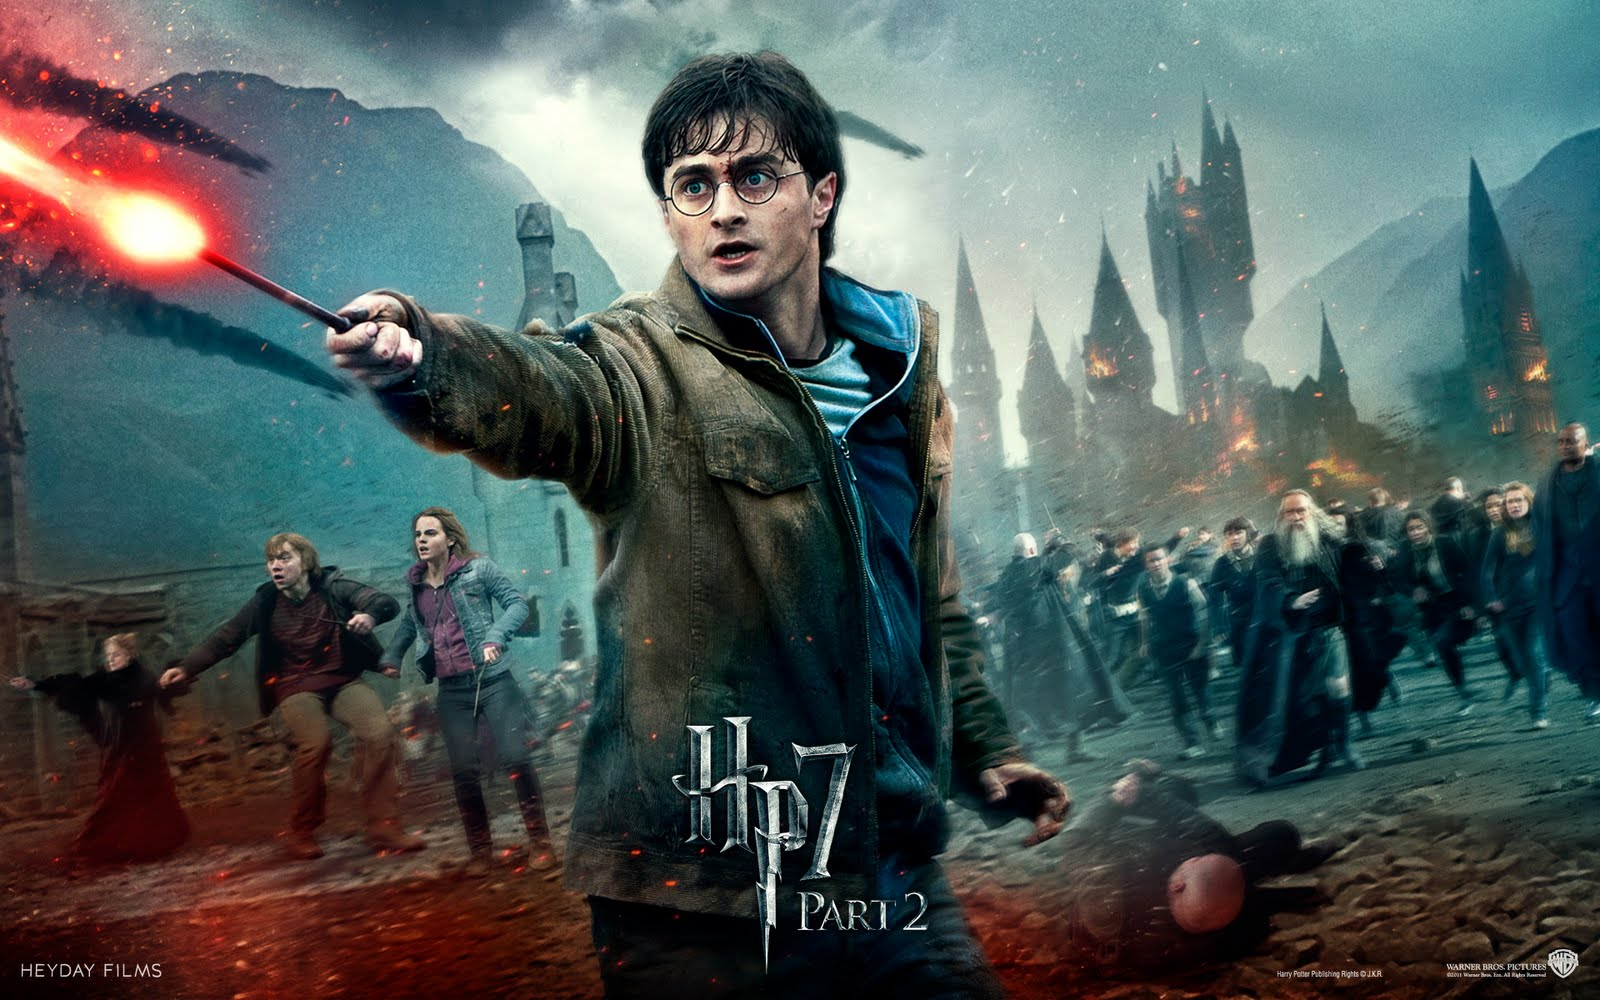 Harry Potter Movies Posters Redesigned With Honest Titles